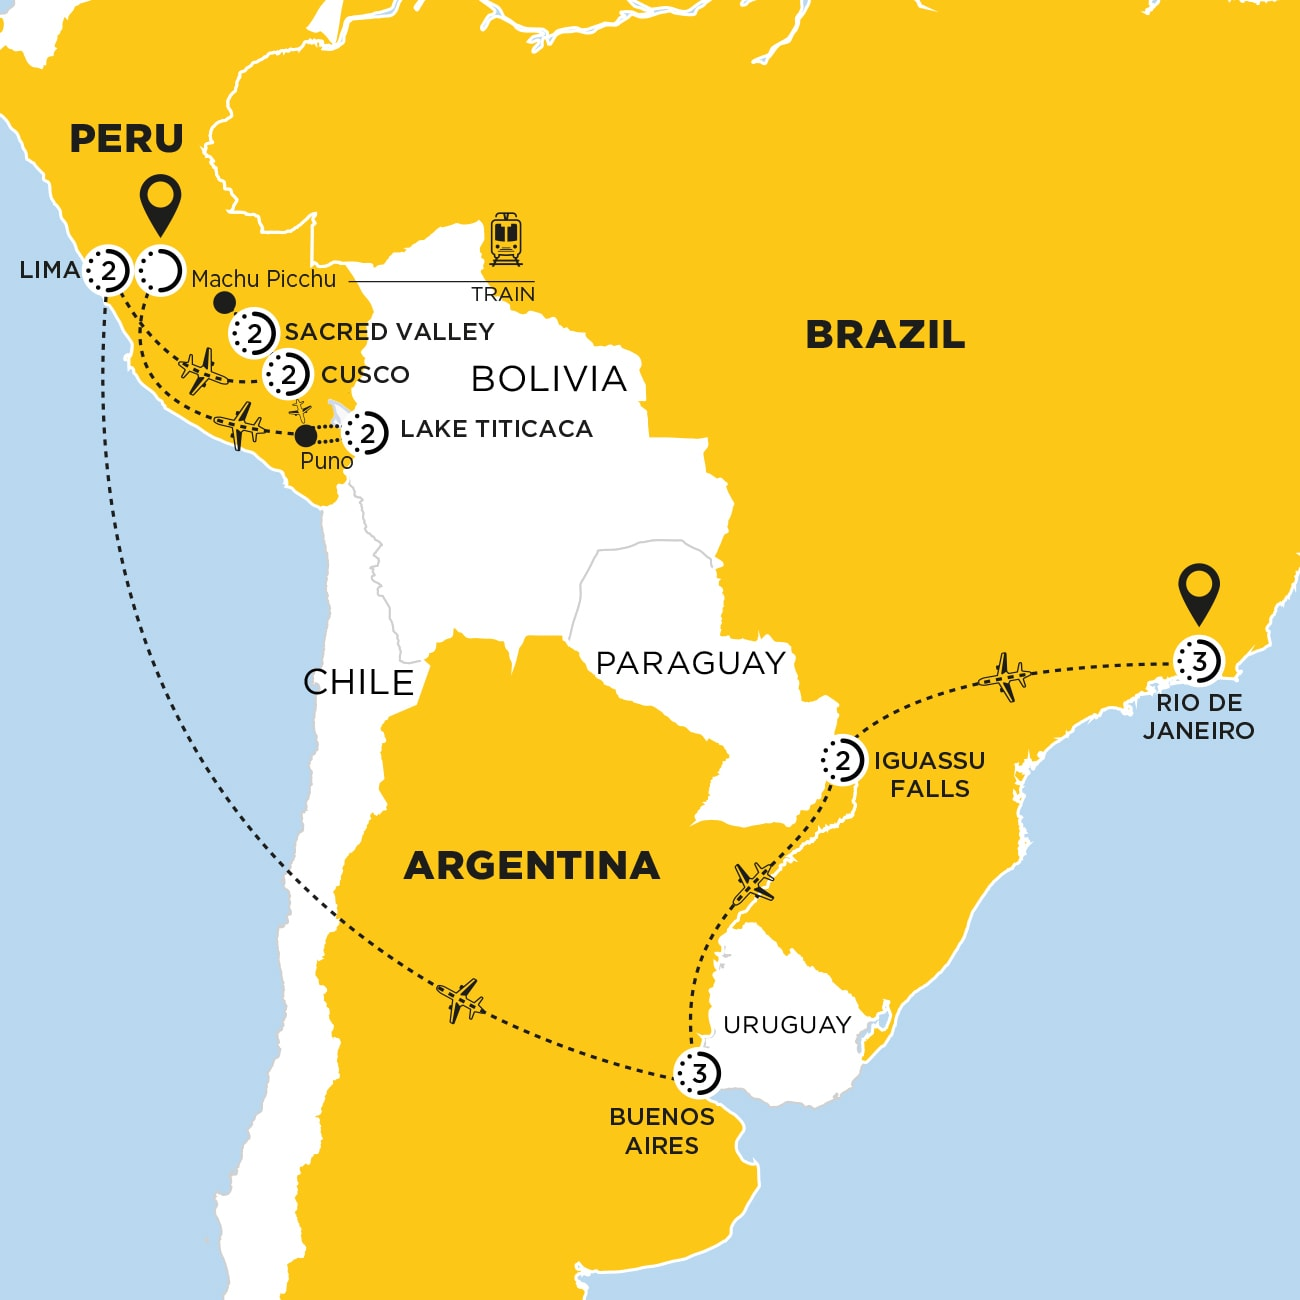 South America Discovery with Puno and Lake Titicaca Map